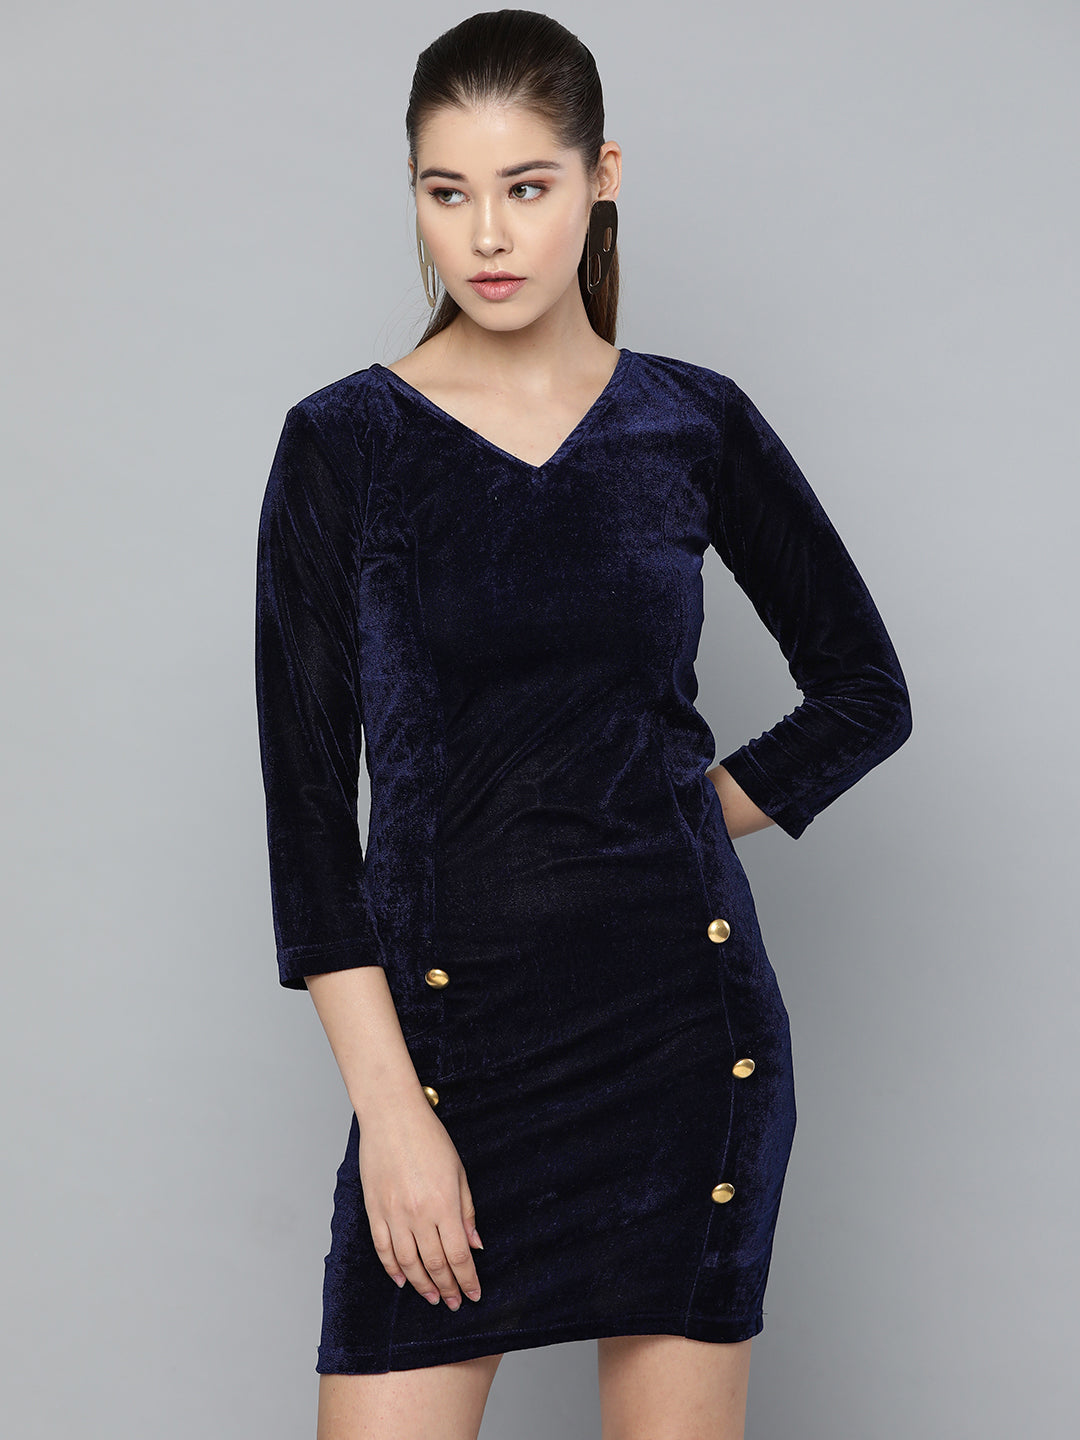 Velvet Royal Blue Dress